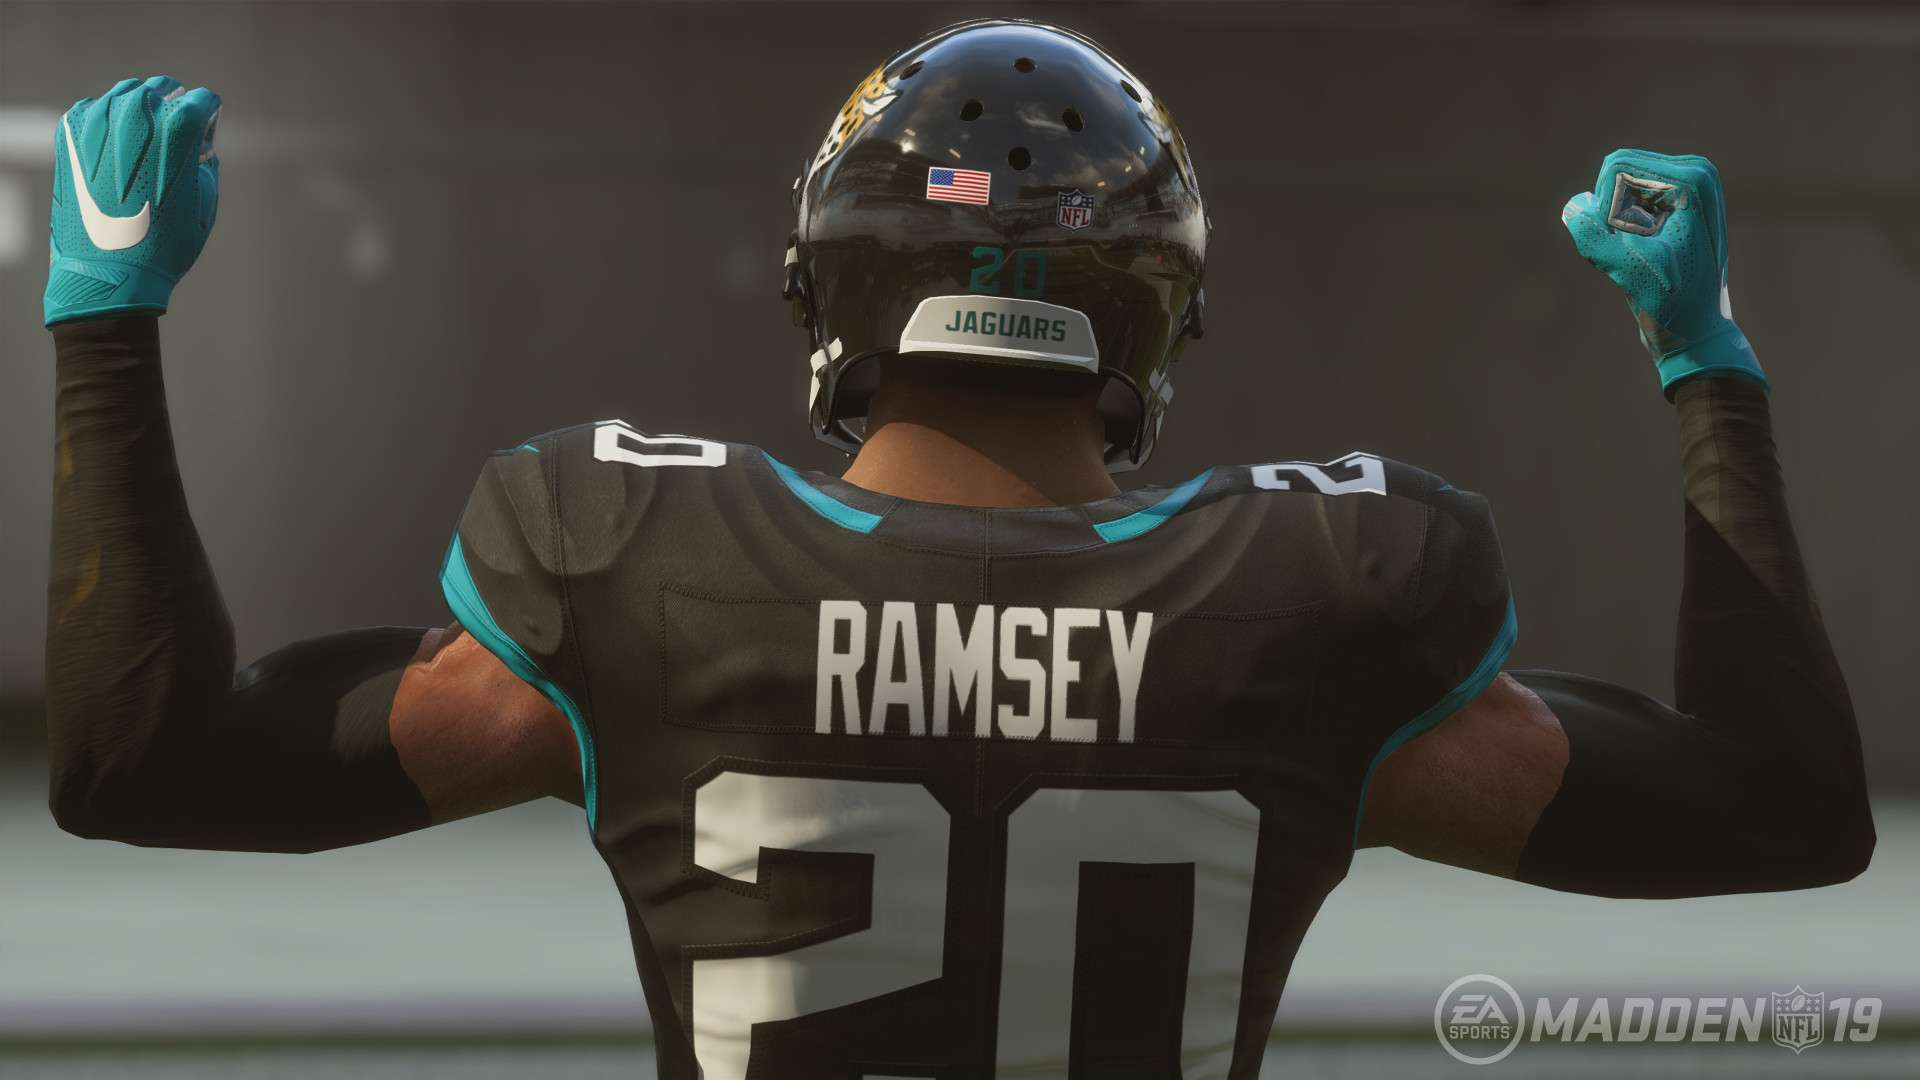 Ranking all 32 teams in 'Madden NFL 19' | Sporting News